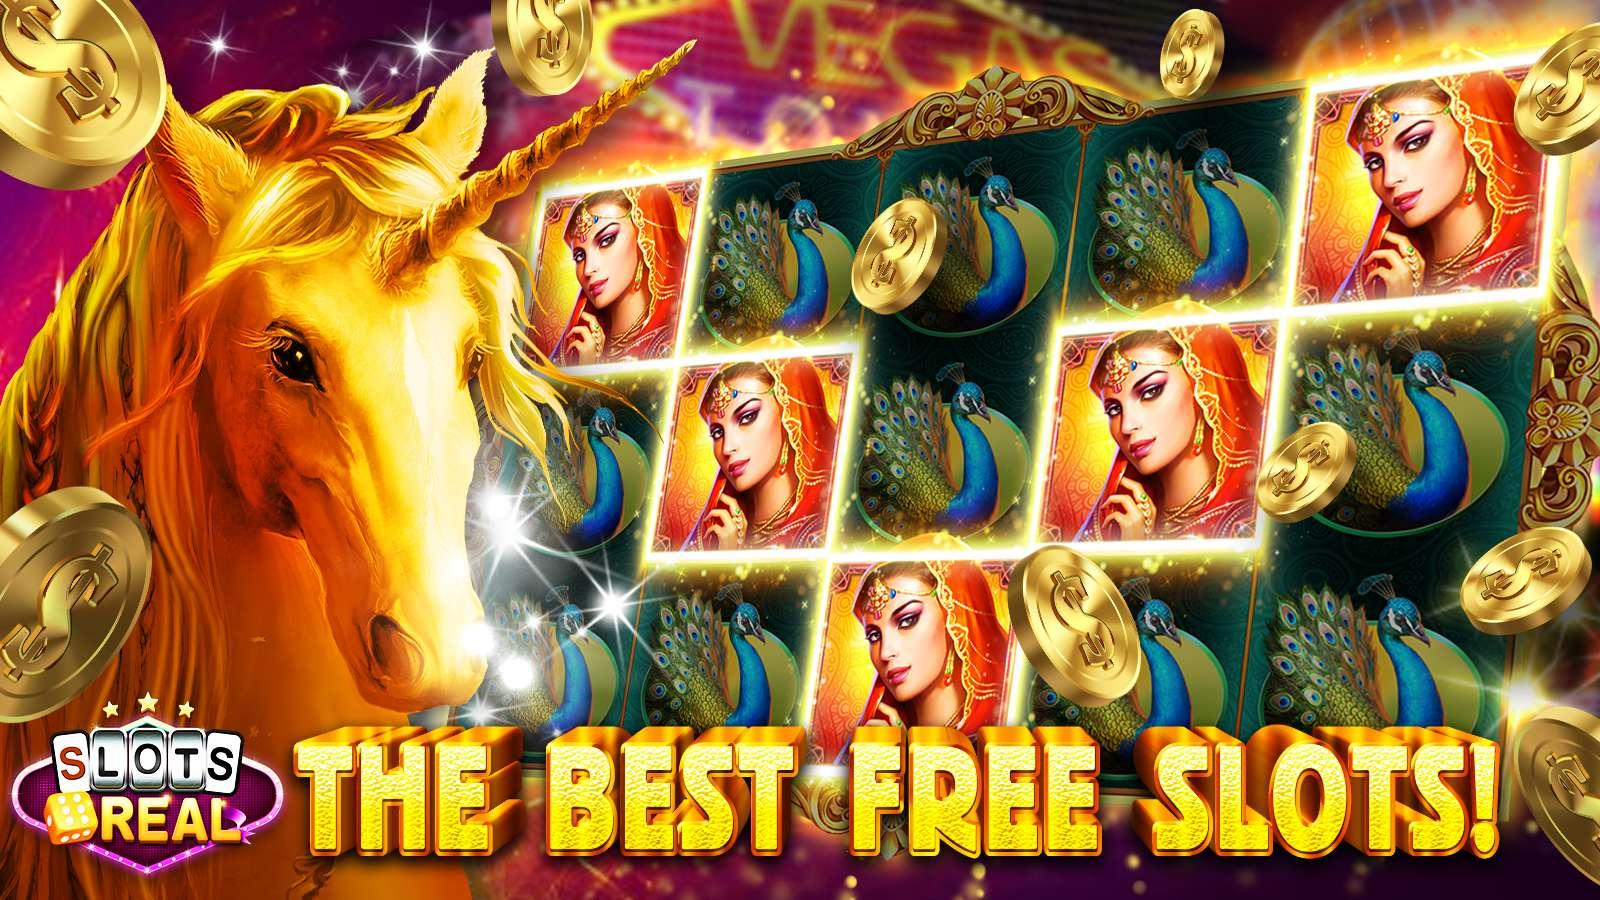 Skippys Arcade Slot - Read the Review and Play for Free